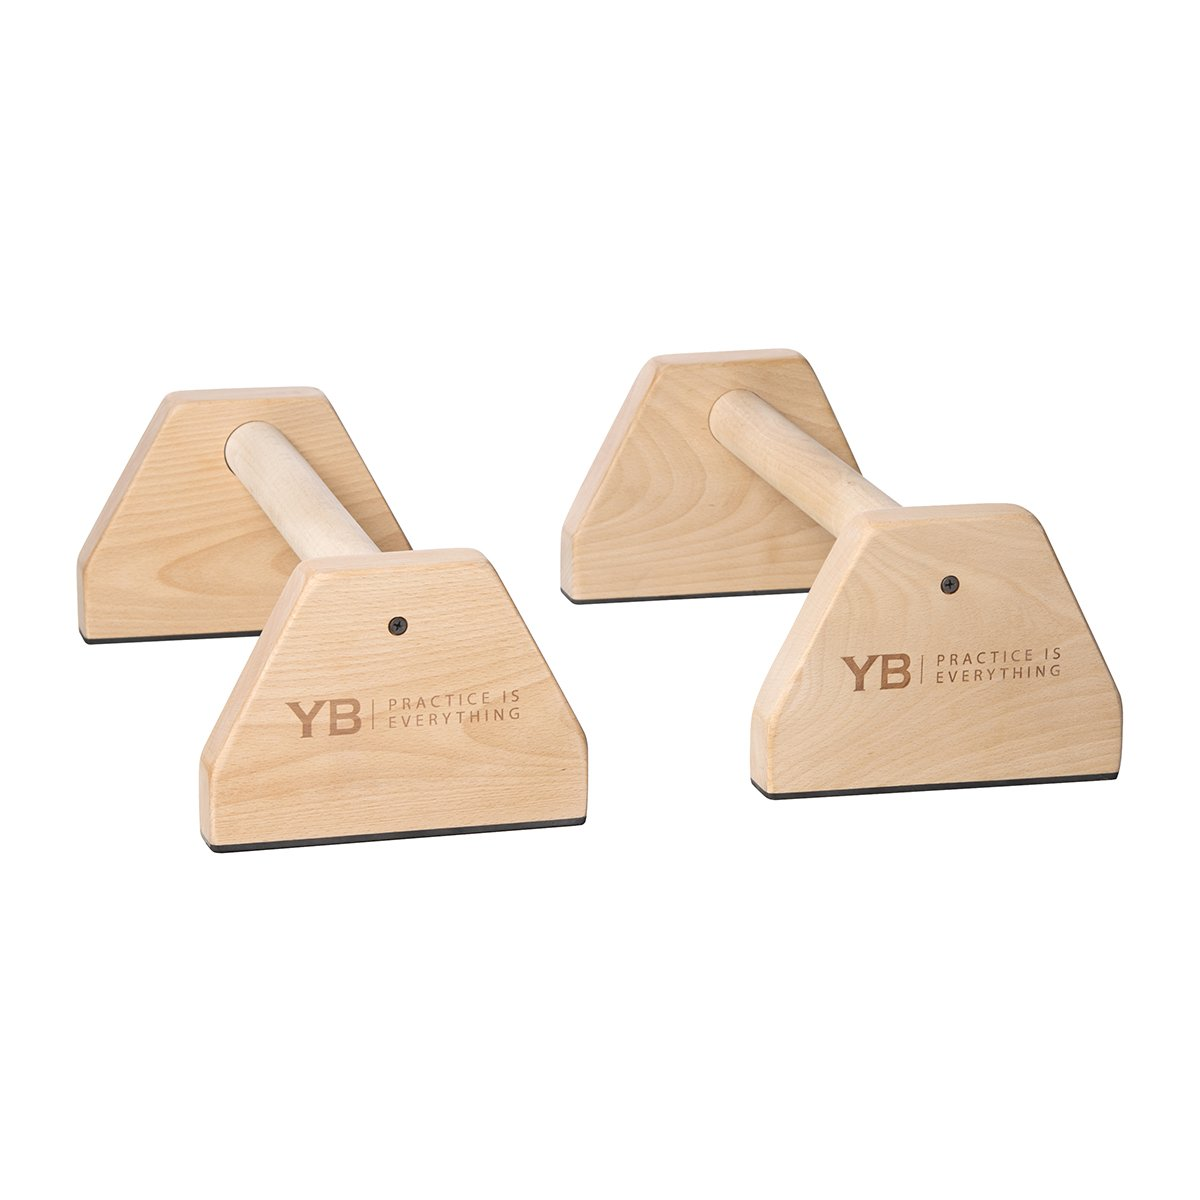 YOGABODY Birch Wood Parallettes (set of 2)   Beautiful, Smooth, Non-Slip Yoga & Gymnastic Training Tool for L-Sits, Lolasana, Handstand Pushups, Jump Backs & More